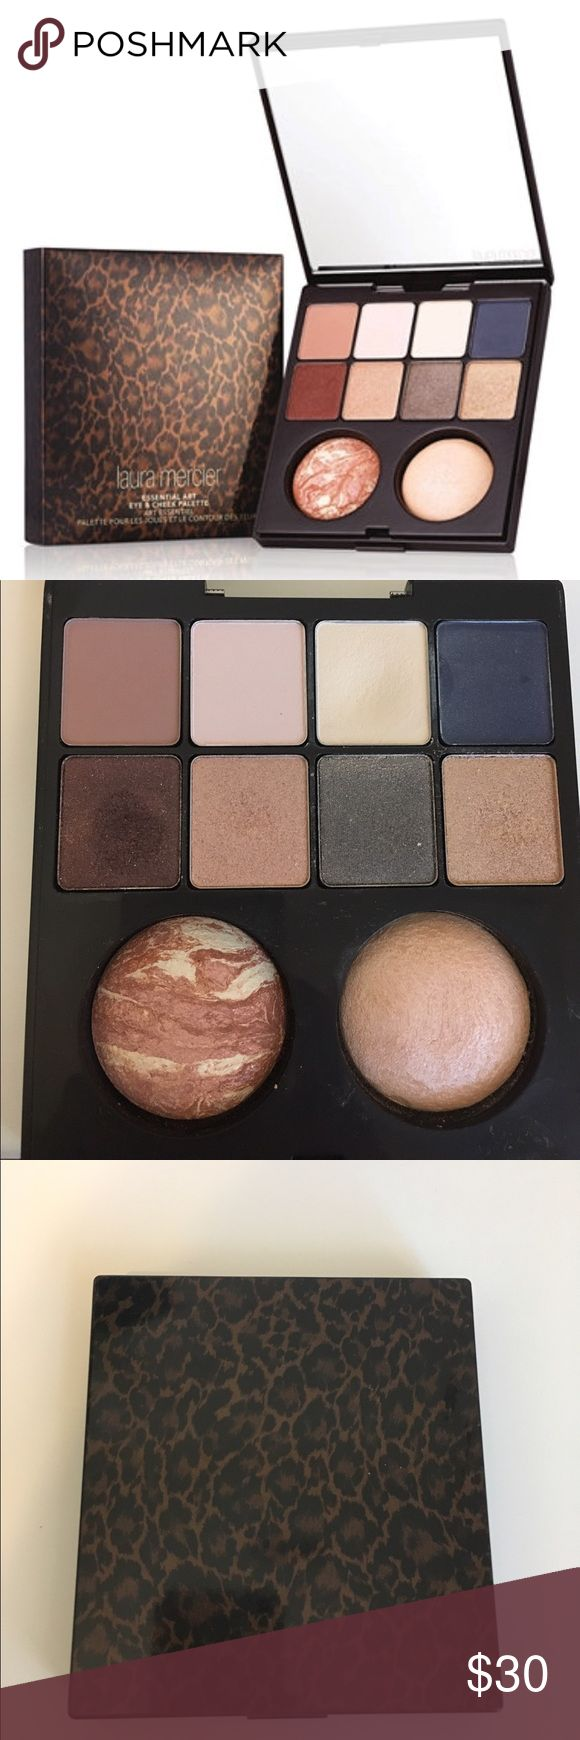 Laura Mercier Holiday Eye and Cheek palette Limited edition Palette valued at $155 includes 8 highly pigmented eye shadows and a matte radiance baked powder highlighter and baked blush illumine in rose. Used about a dozen times. Hinge is broken, but it still latches just fine! laura mercier Makeup Eyeshadow